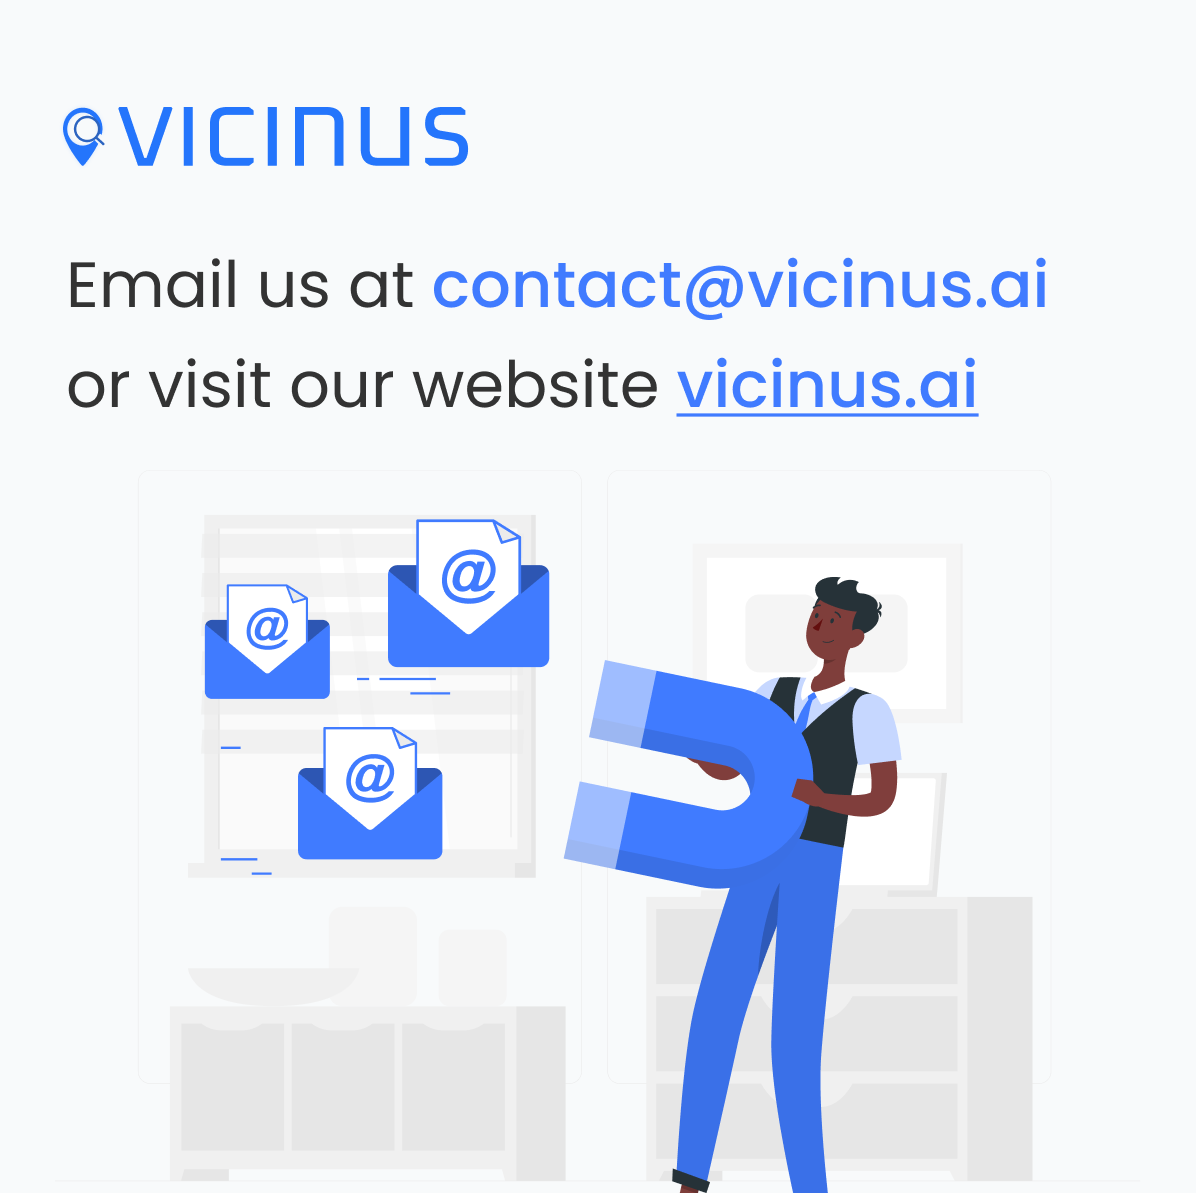 Vicinus contact us graphic. Email address: contact@vicinus.ai. Visit website: https://vicinus.ai